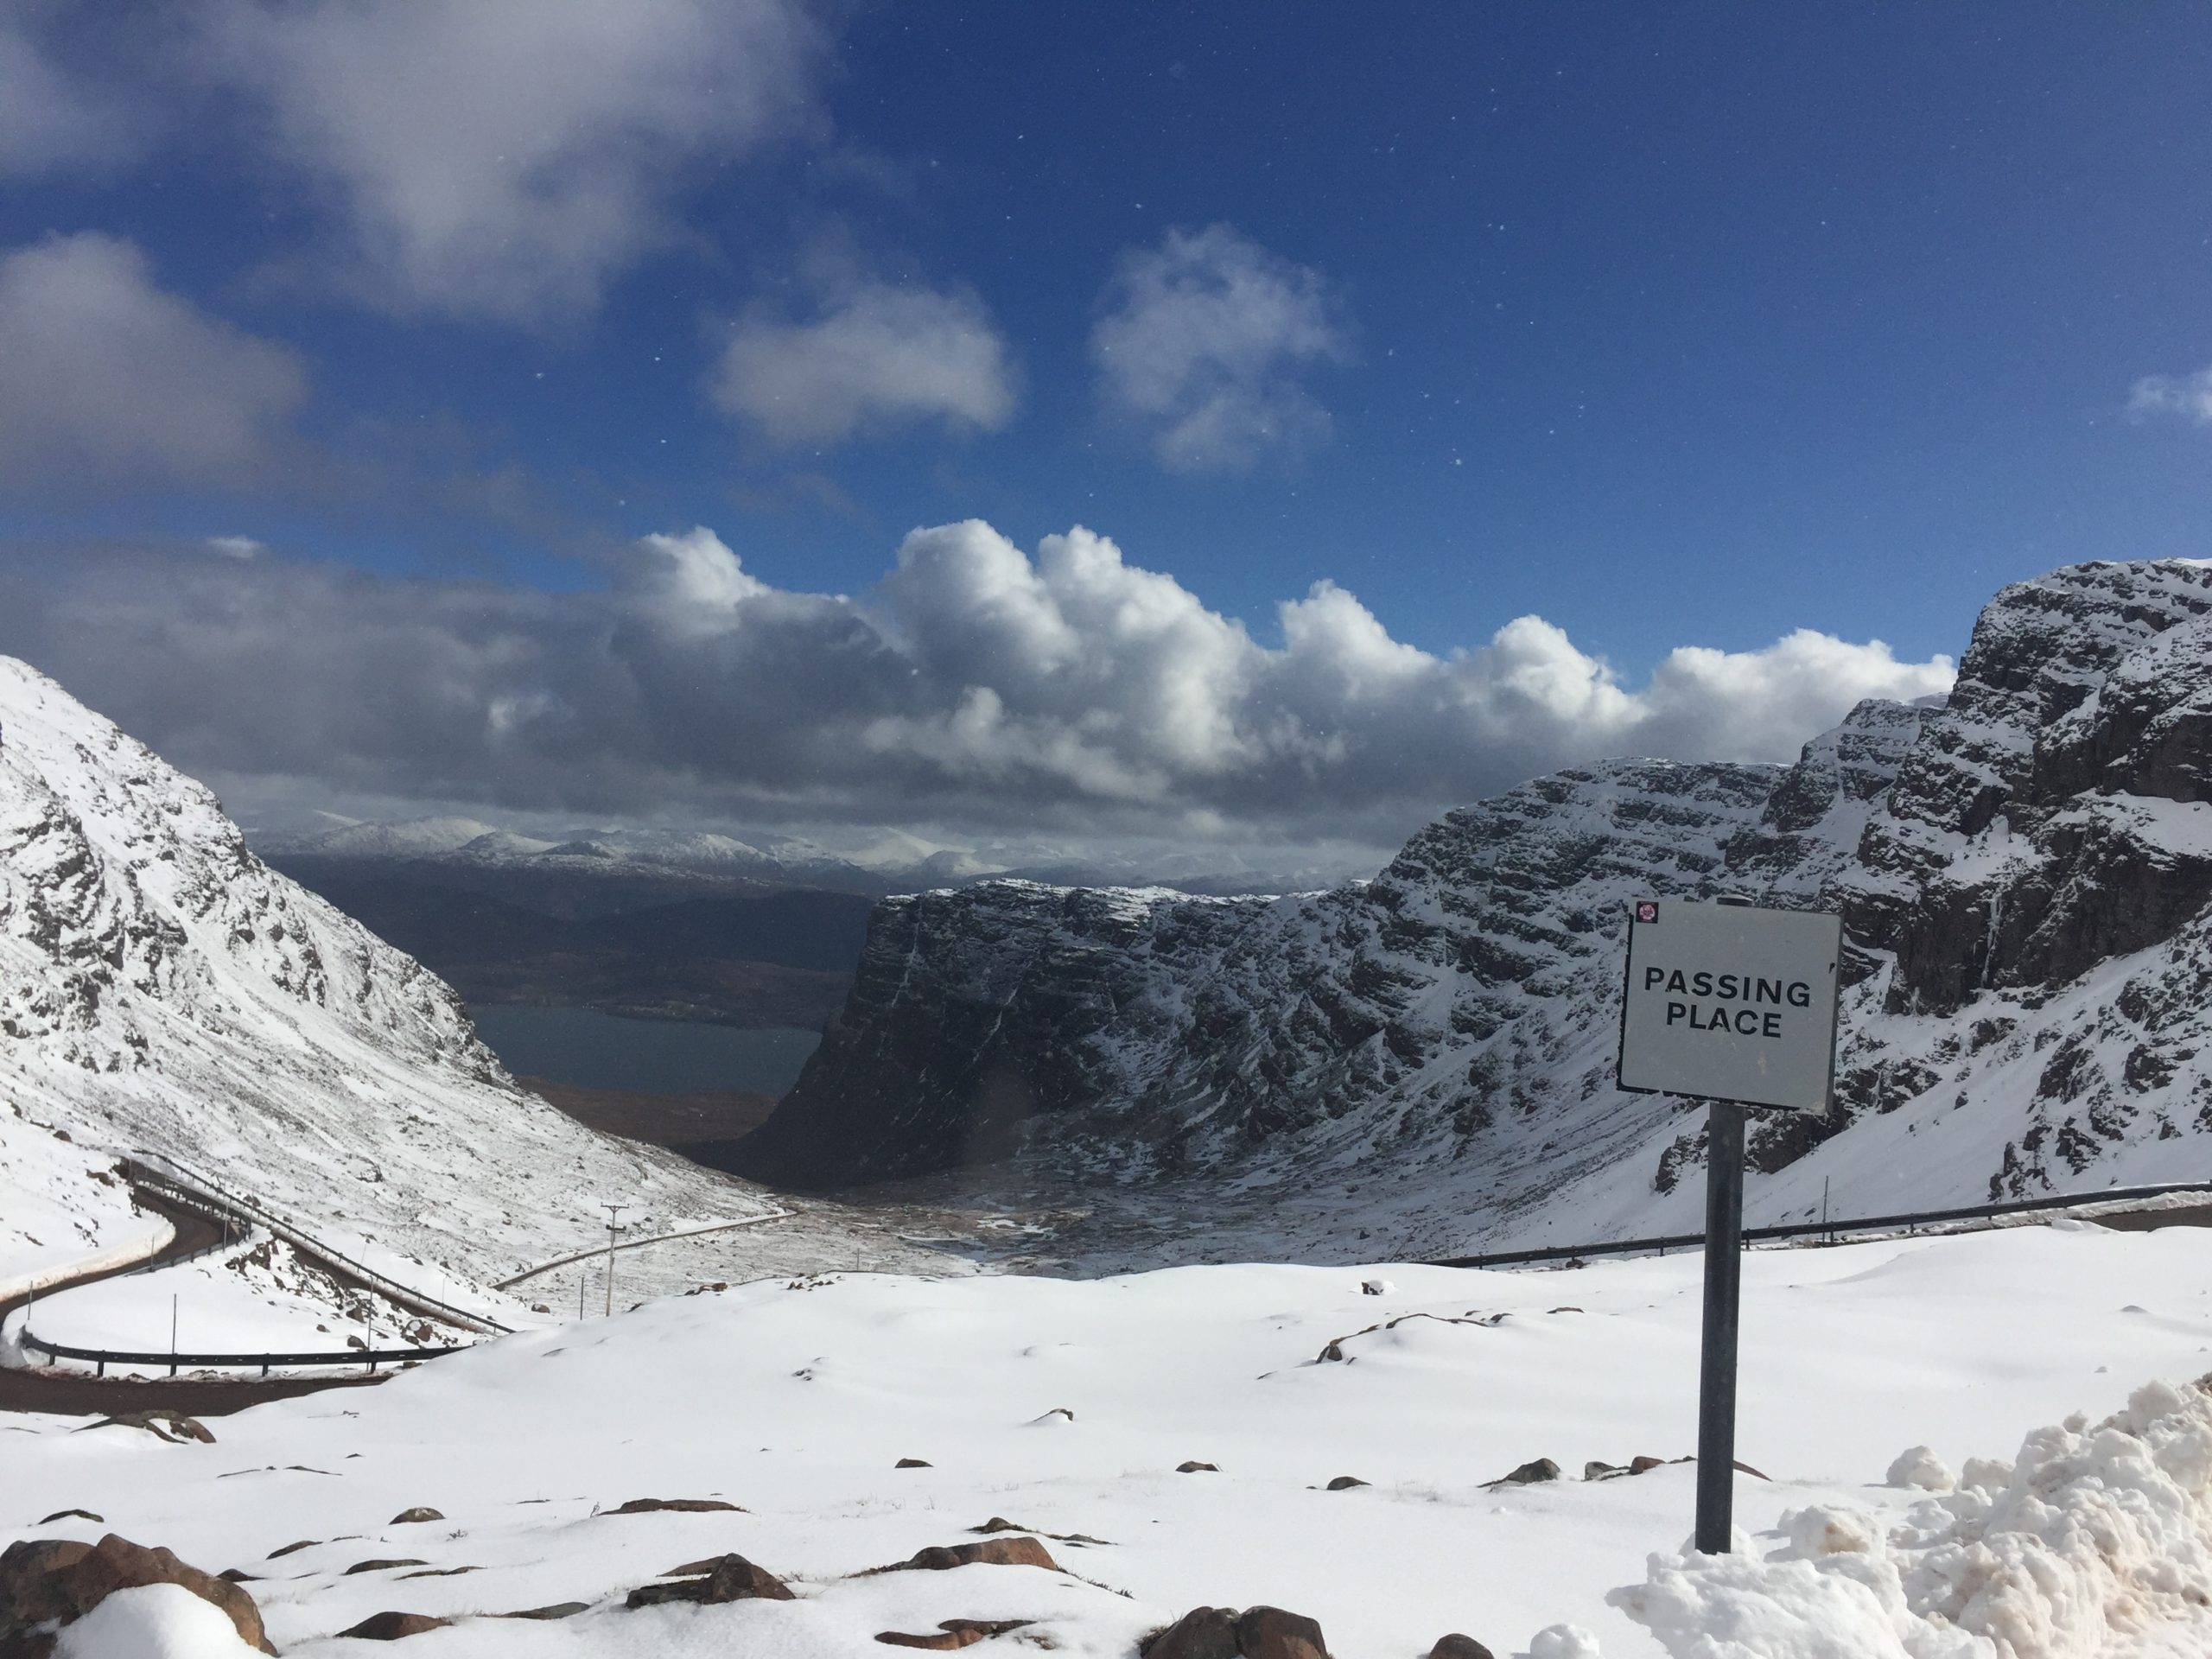 The Bealach Na Ba is currently closed due to snow